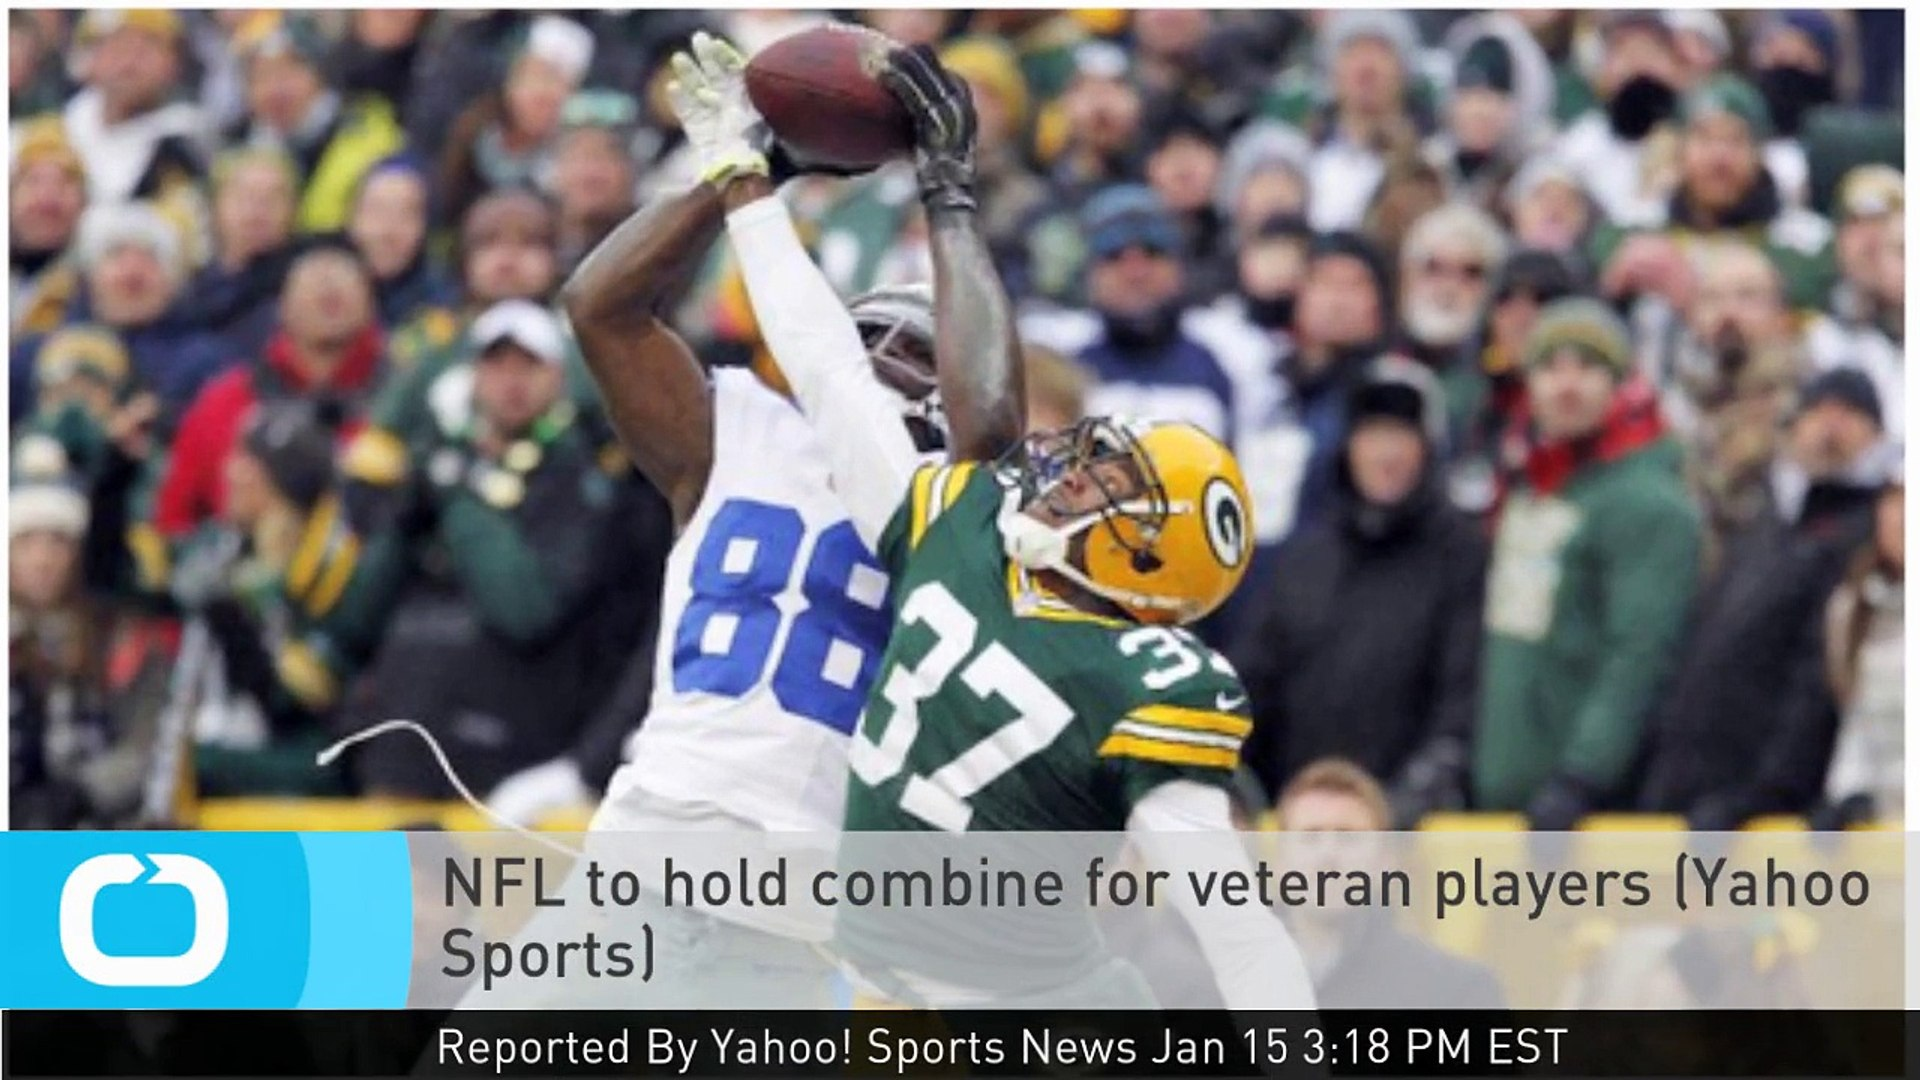 NFL to Hold Combine for Veteran Players (Yahoo Sports)